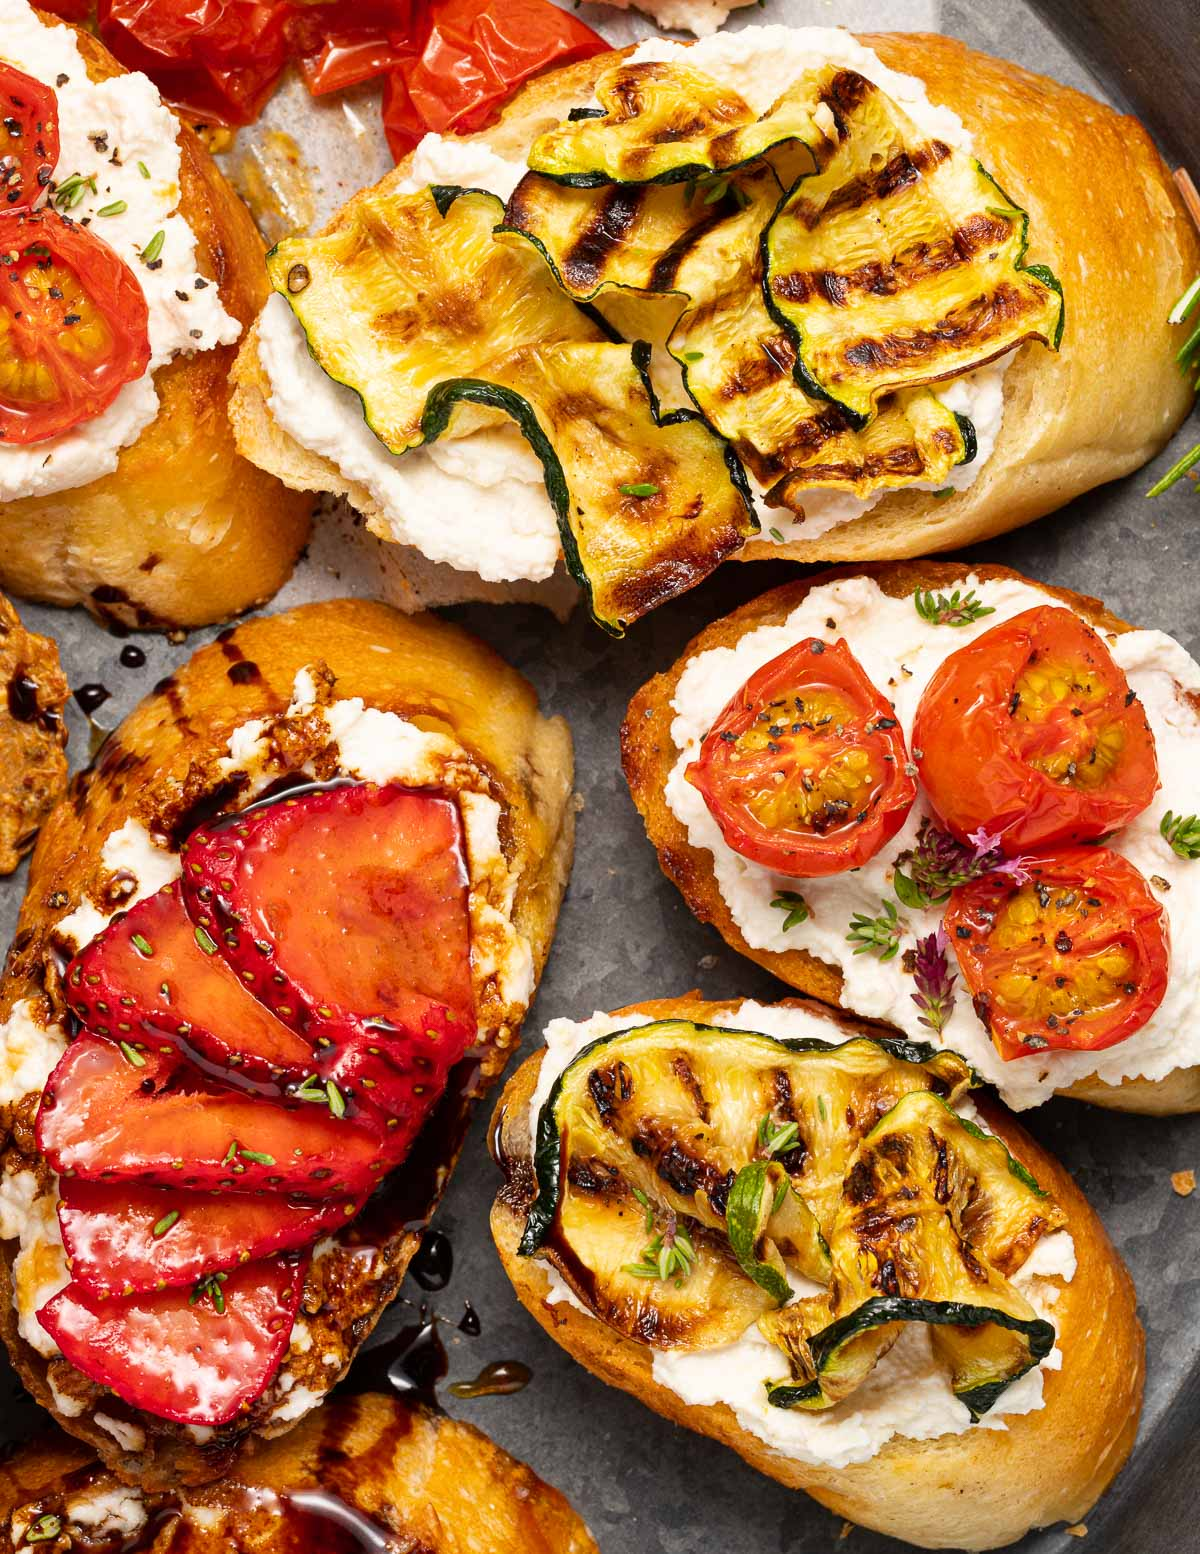 bruschetta topped with tomatoes, zucchini and strawberries